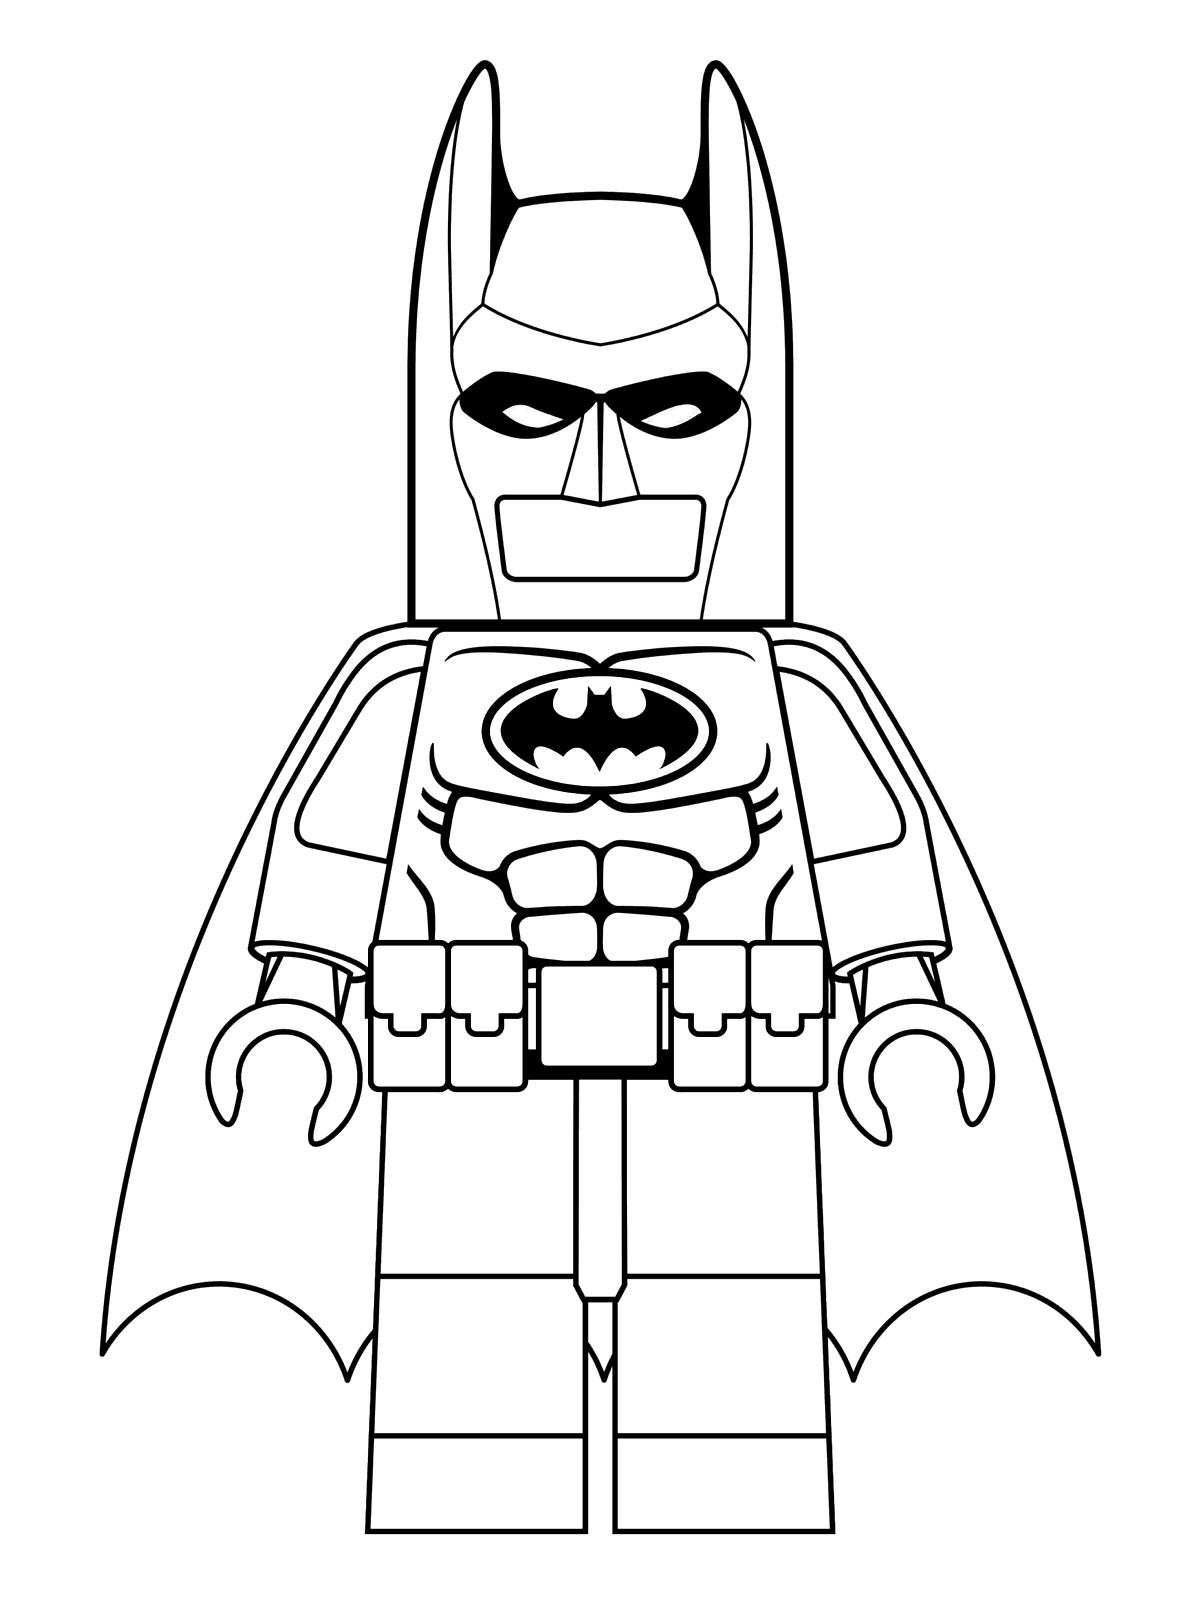 Kleurplaten Lego Emmet.The Lego Movie Coloring Pages At Getdrawings Com Free For Personal